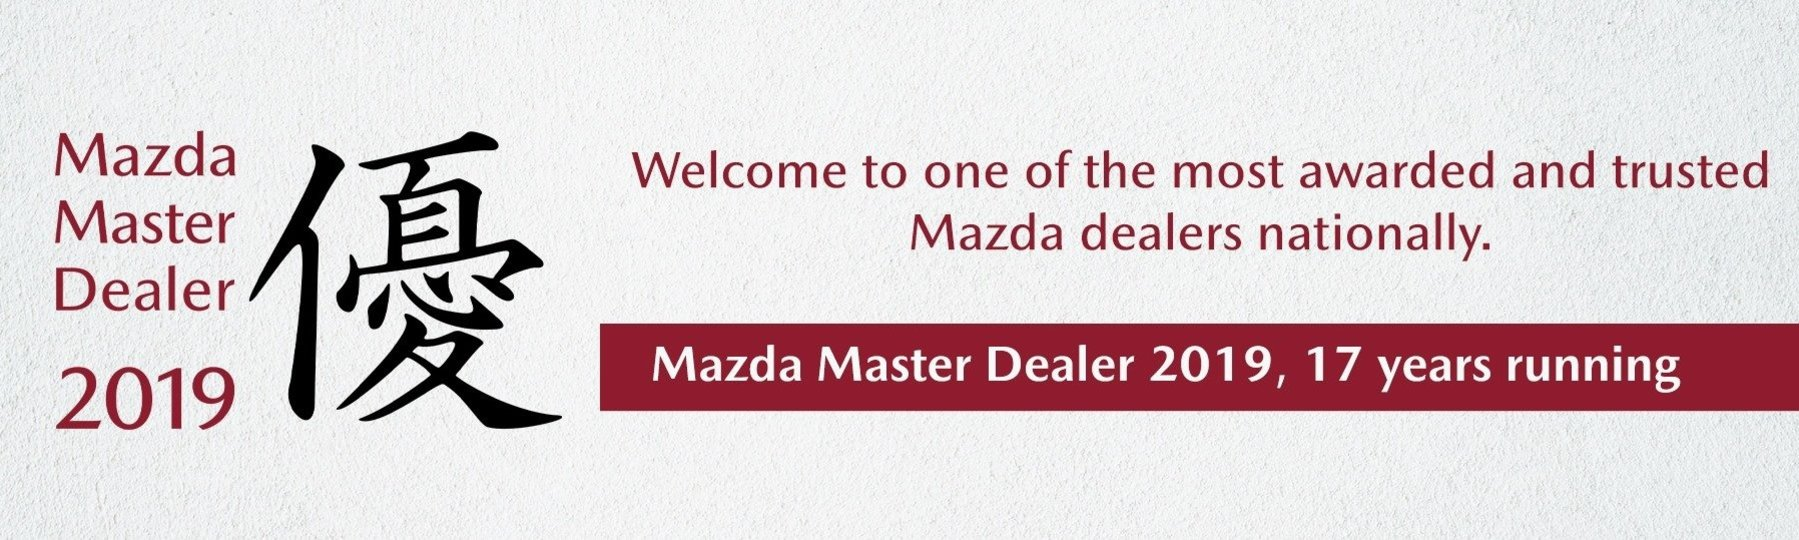 Mazda Master Dealer 17 years in a row!